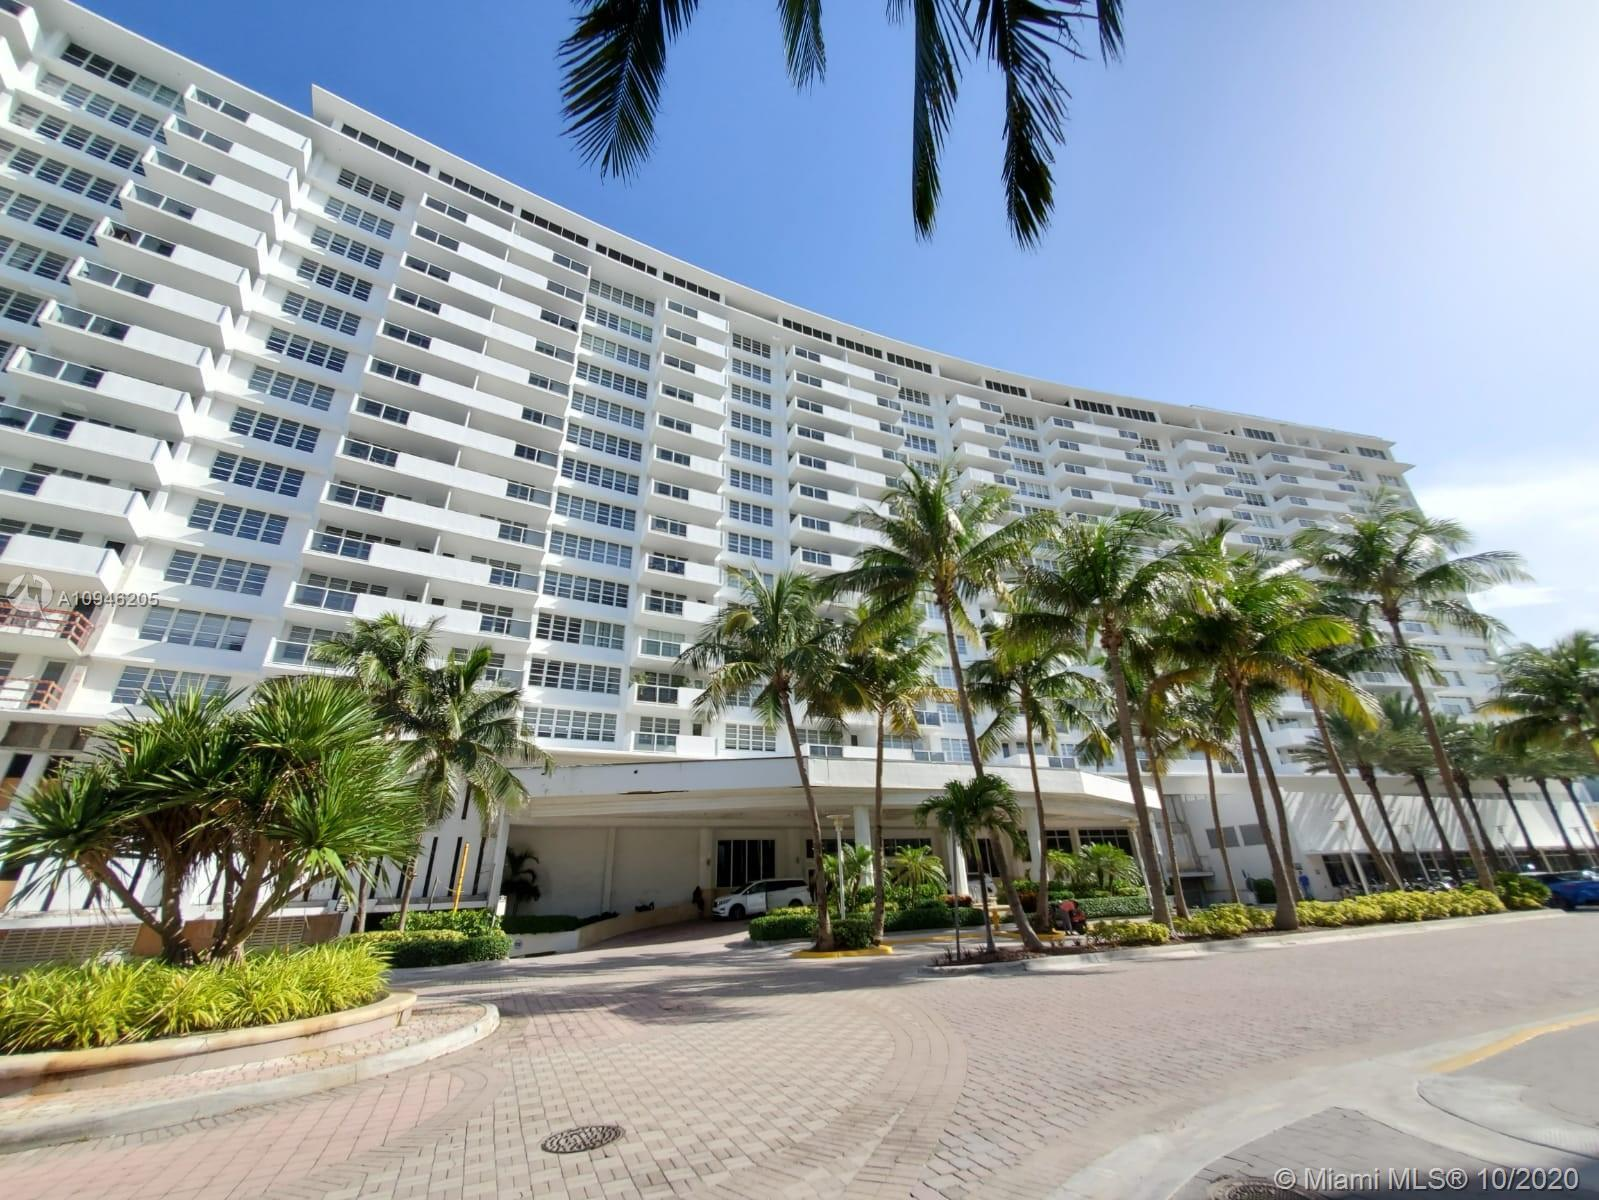 AMAZING RESORT STYLE CONDO LOCATED WHERE LINCOLN RD MEETS THE OCEAN AT FAMOUS AND DESIRABLE SOUTH BE